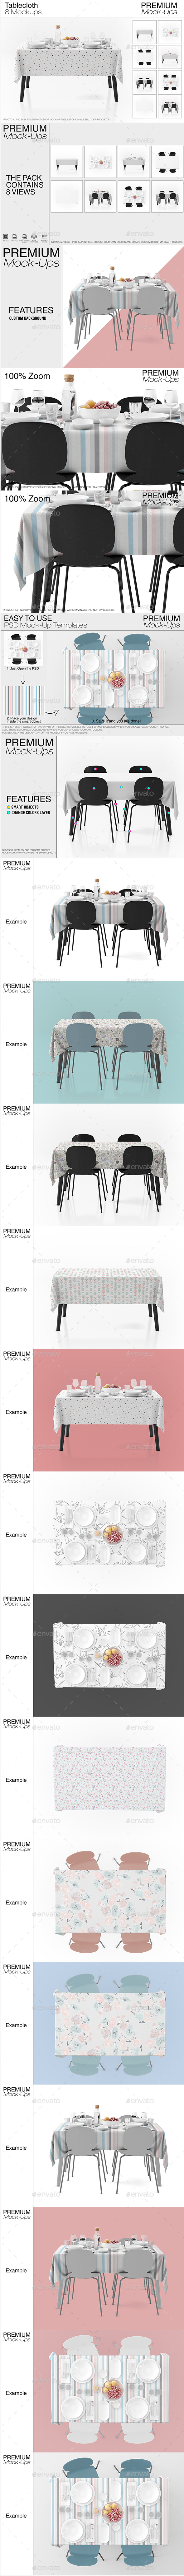 Tablecloth Mockup Set - Print Product Mock-Ups